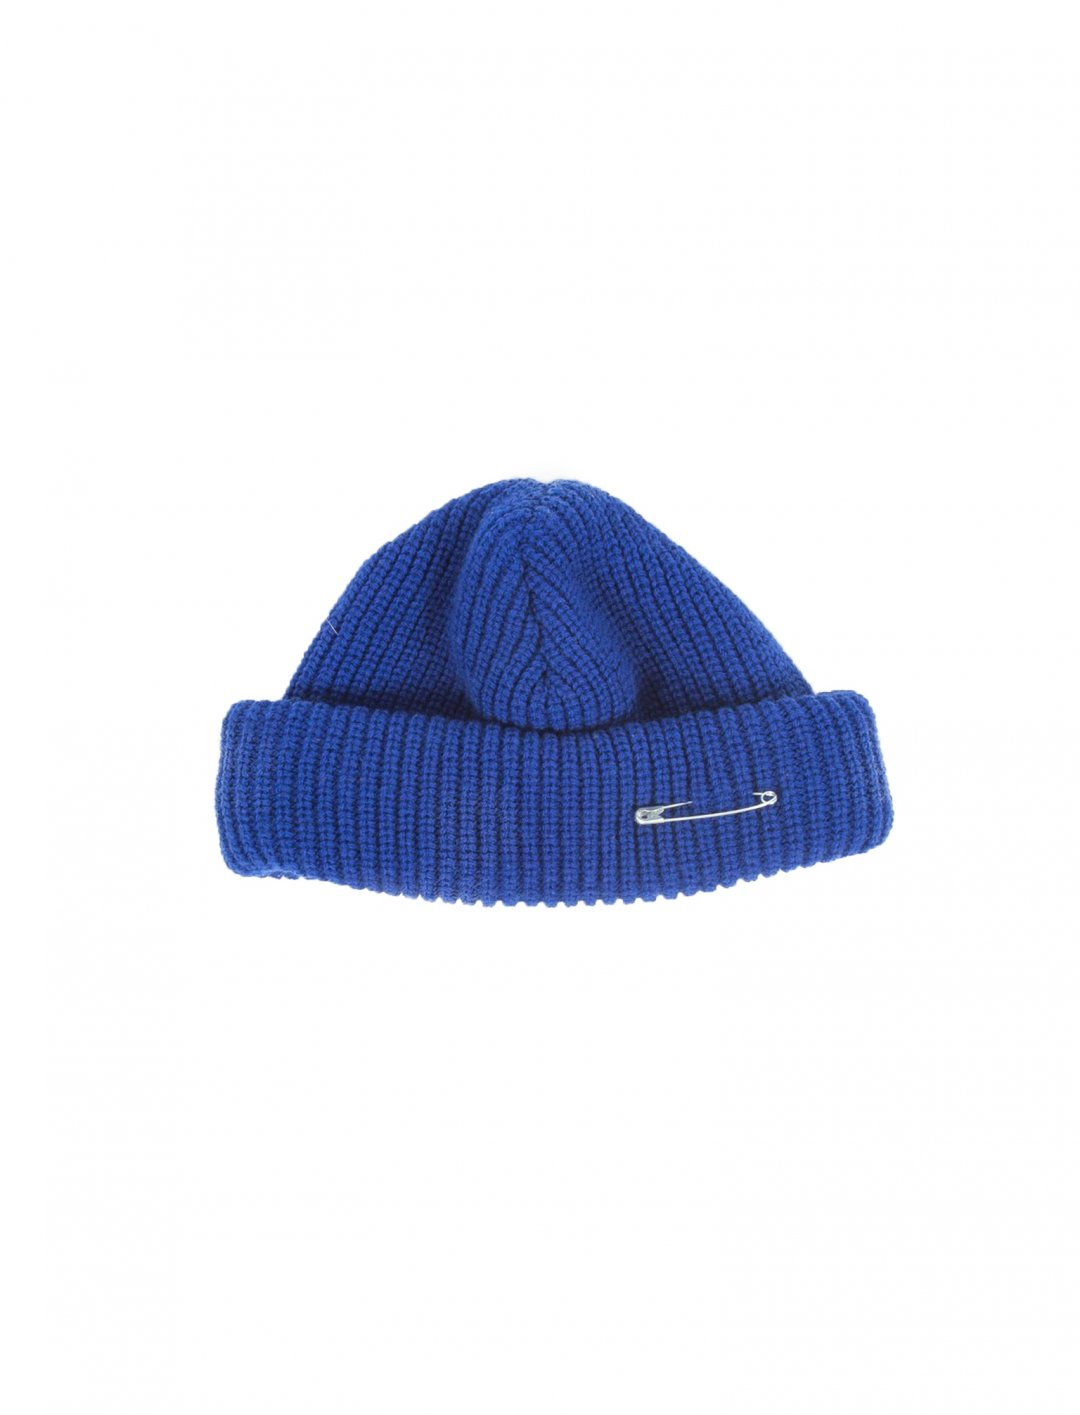 "Justin Timberlake's Beanie {""id"":5,""product_section_id"":1,""name"":""Clothing"",""order"":5} Maybe tommorow"